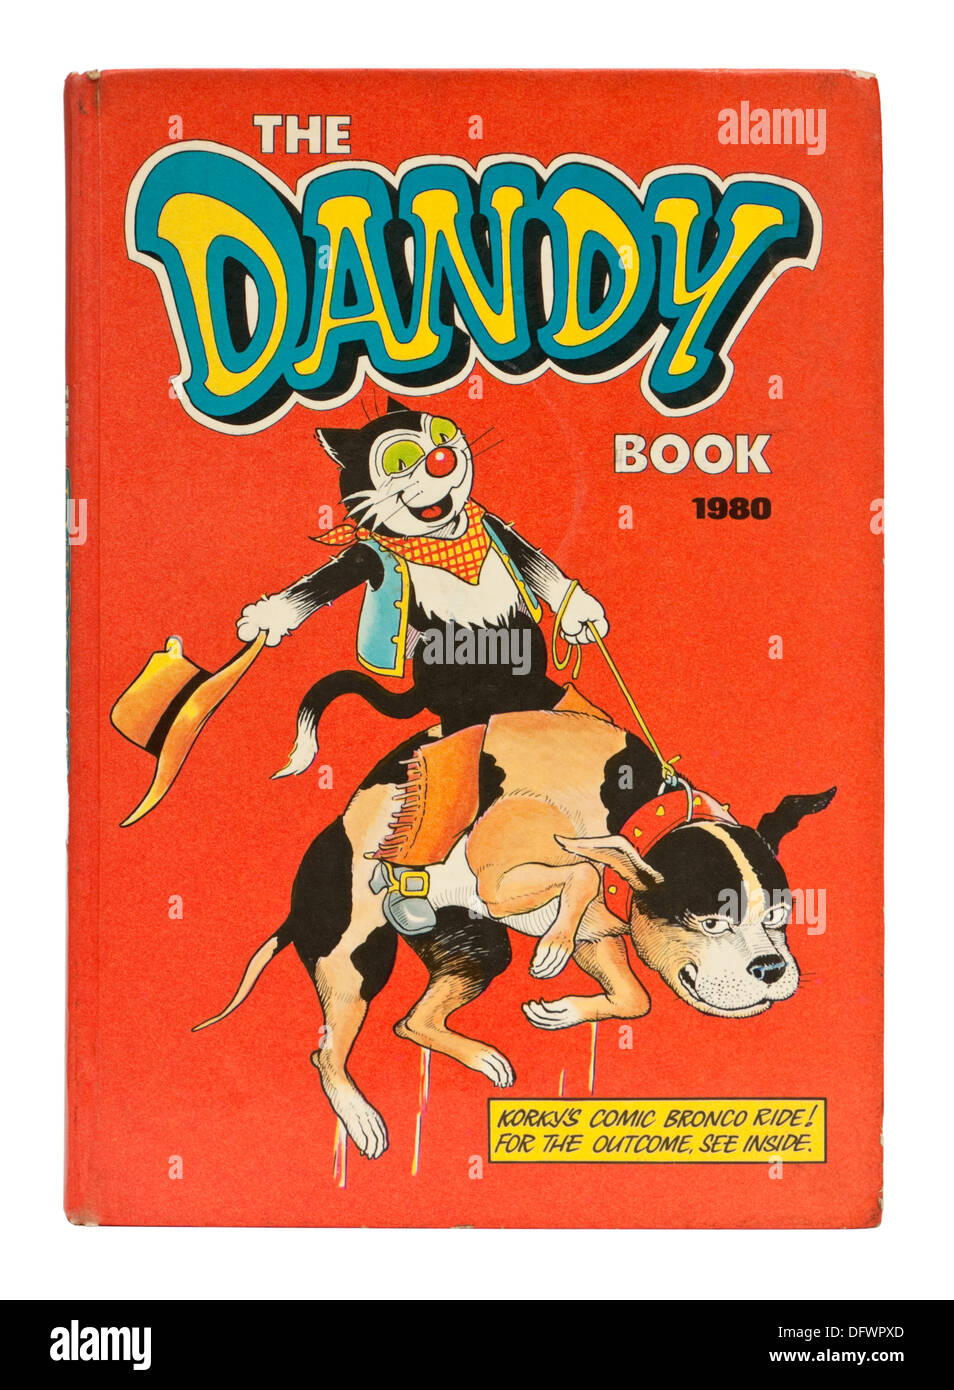 Vintage 1980 Dandy comic annual, featuring Korky the Cat and Desperate Dan - Stock Image